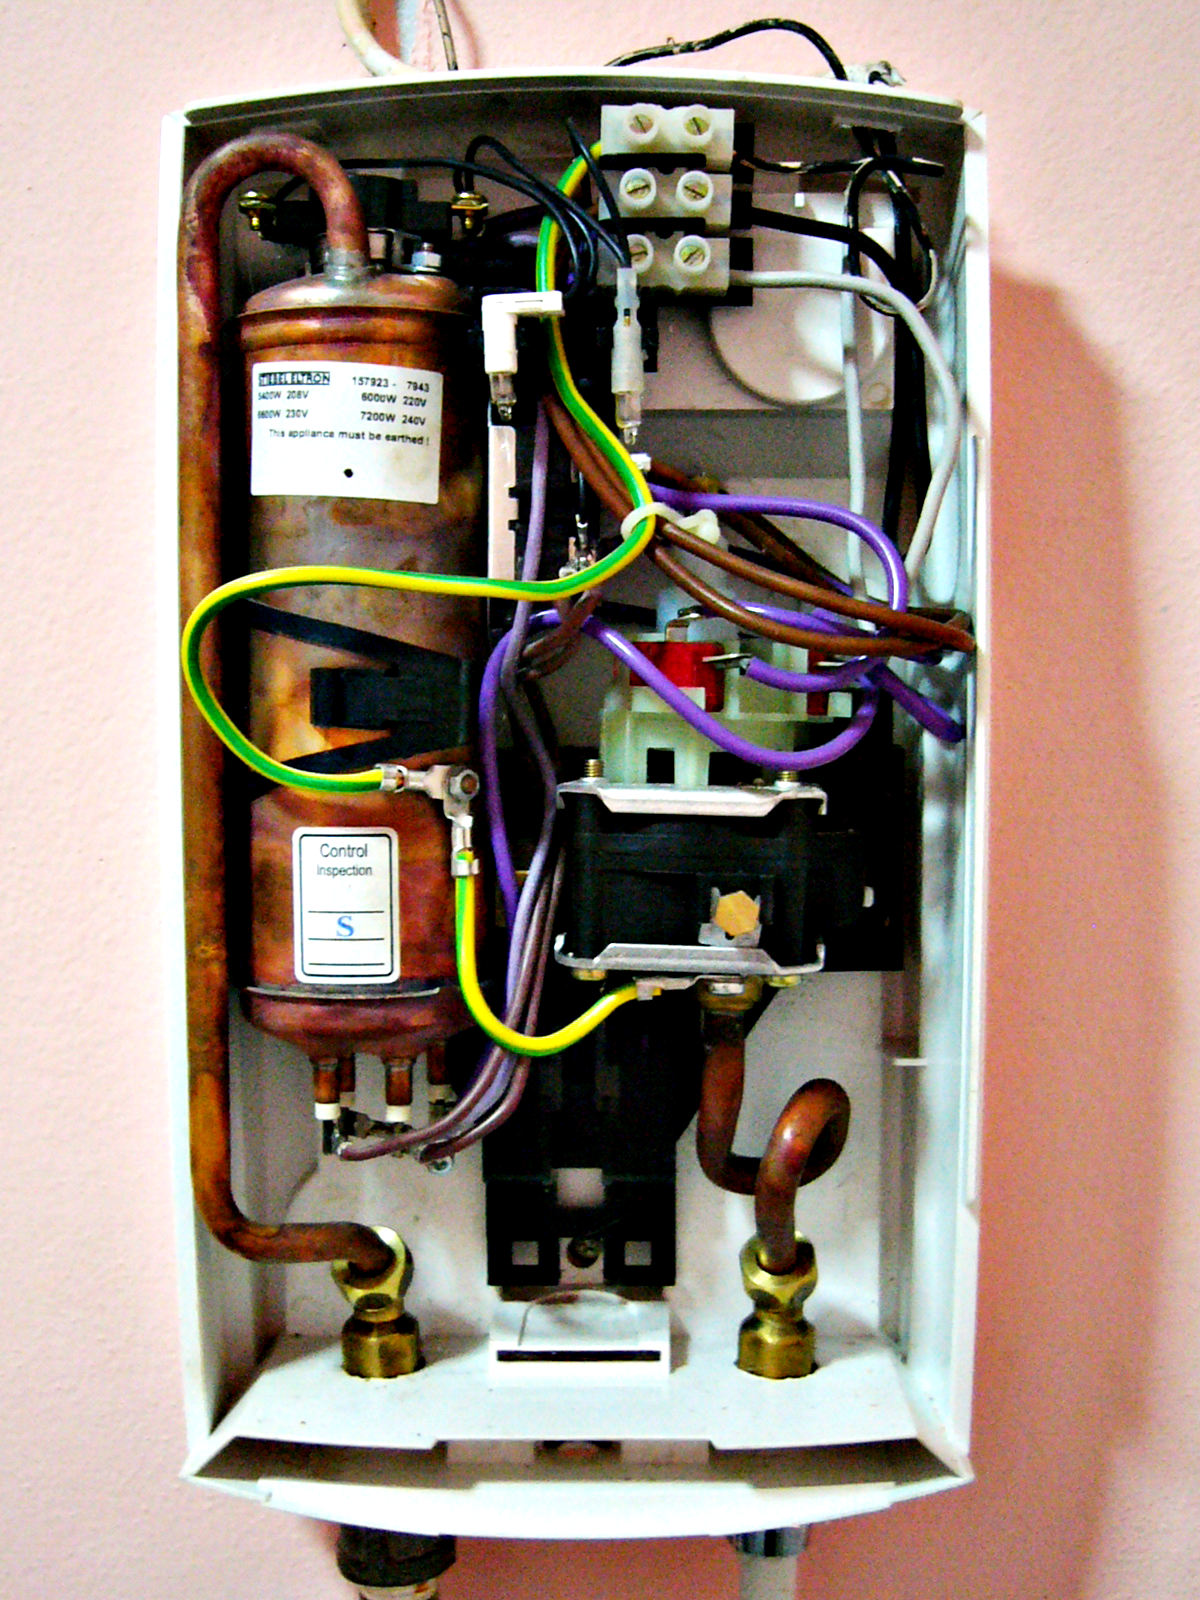 Tankless Water Heating Wikipedia Wiring A Thermostat To An Electric Heater